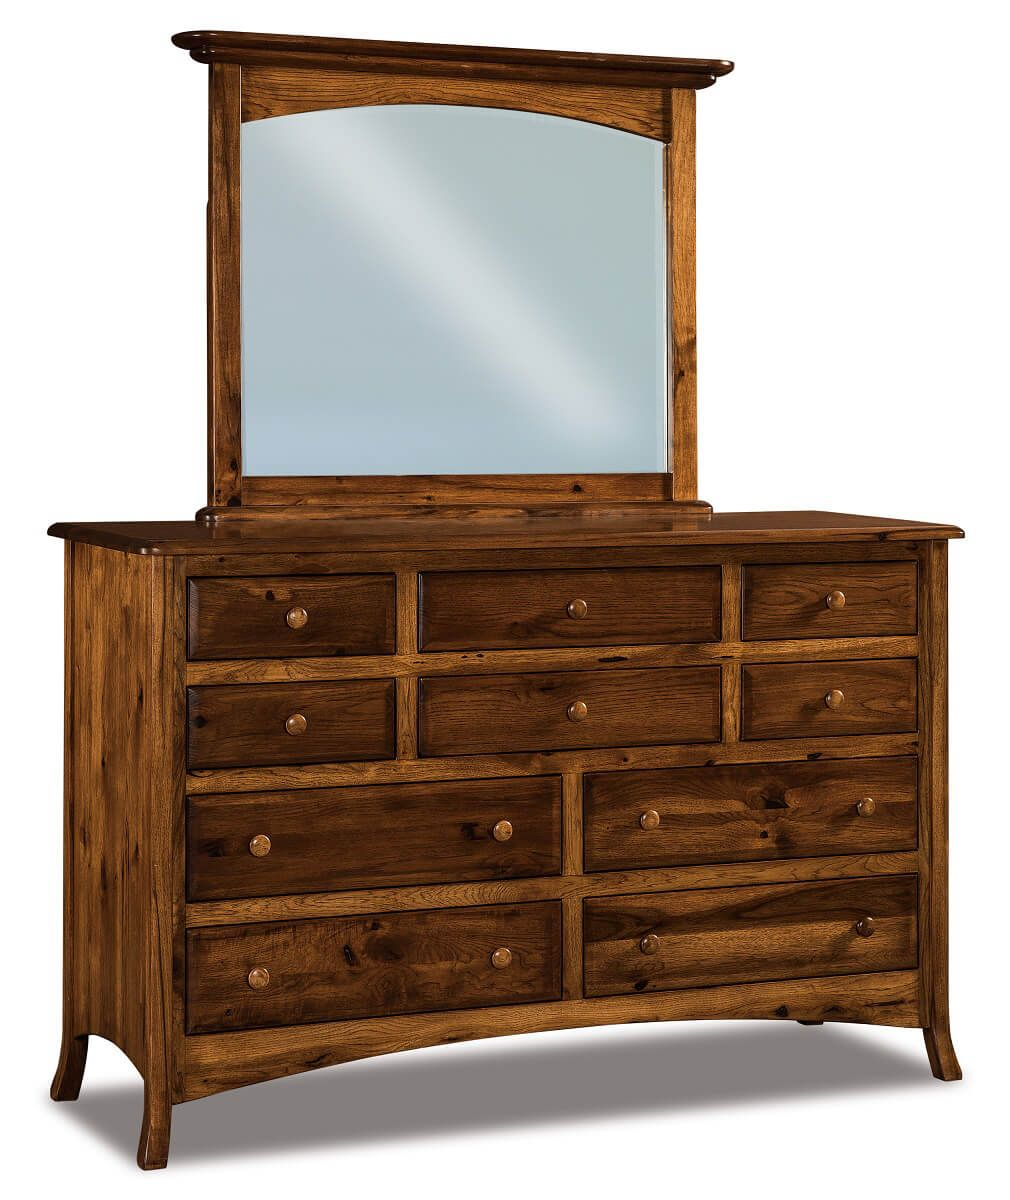 Bradley Dresser with Mirror